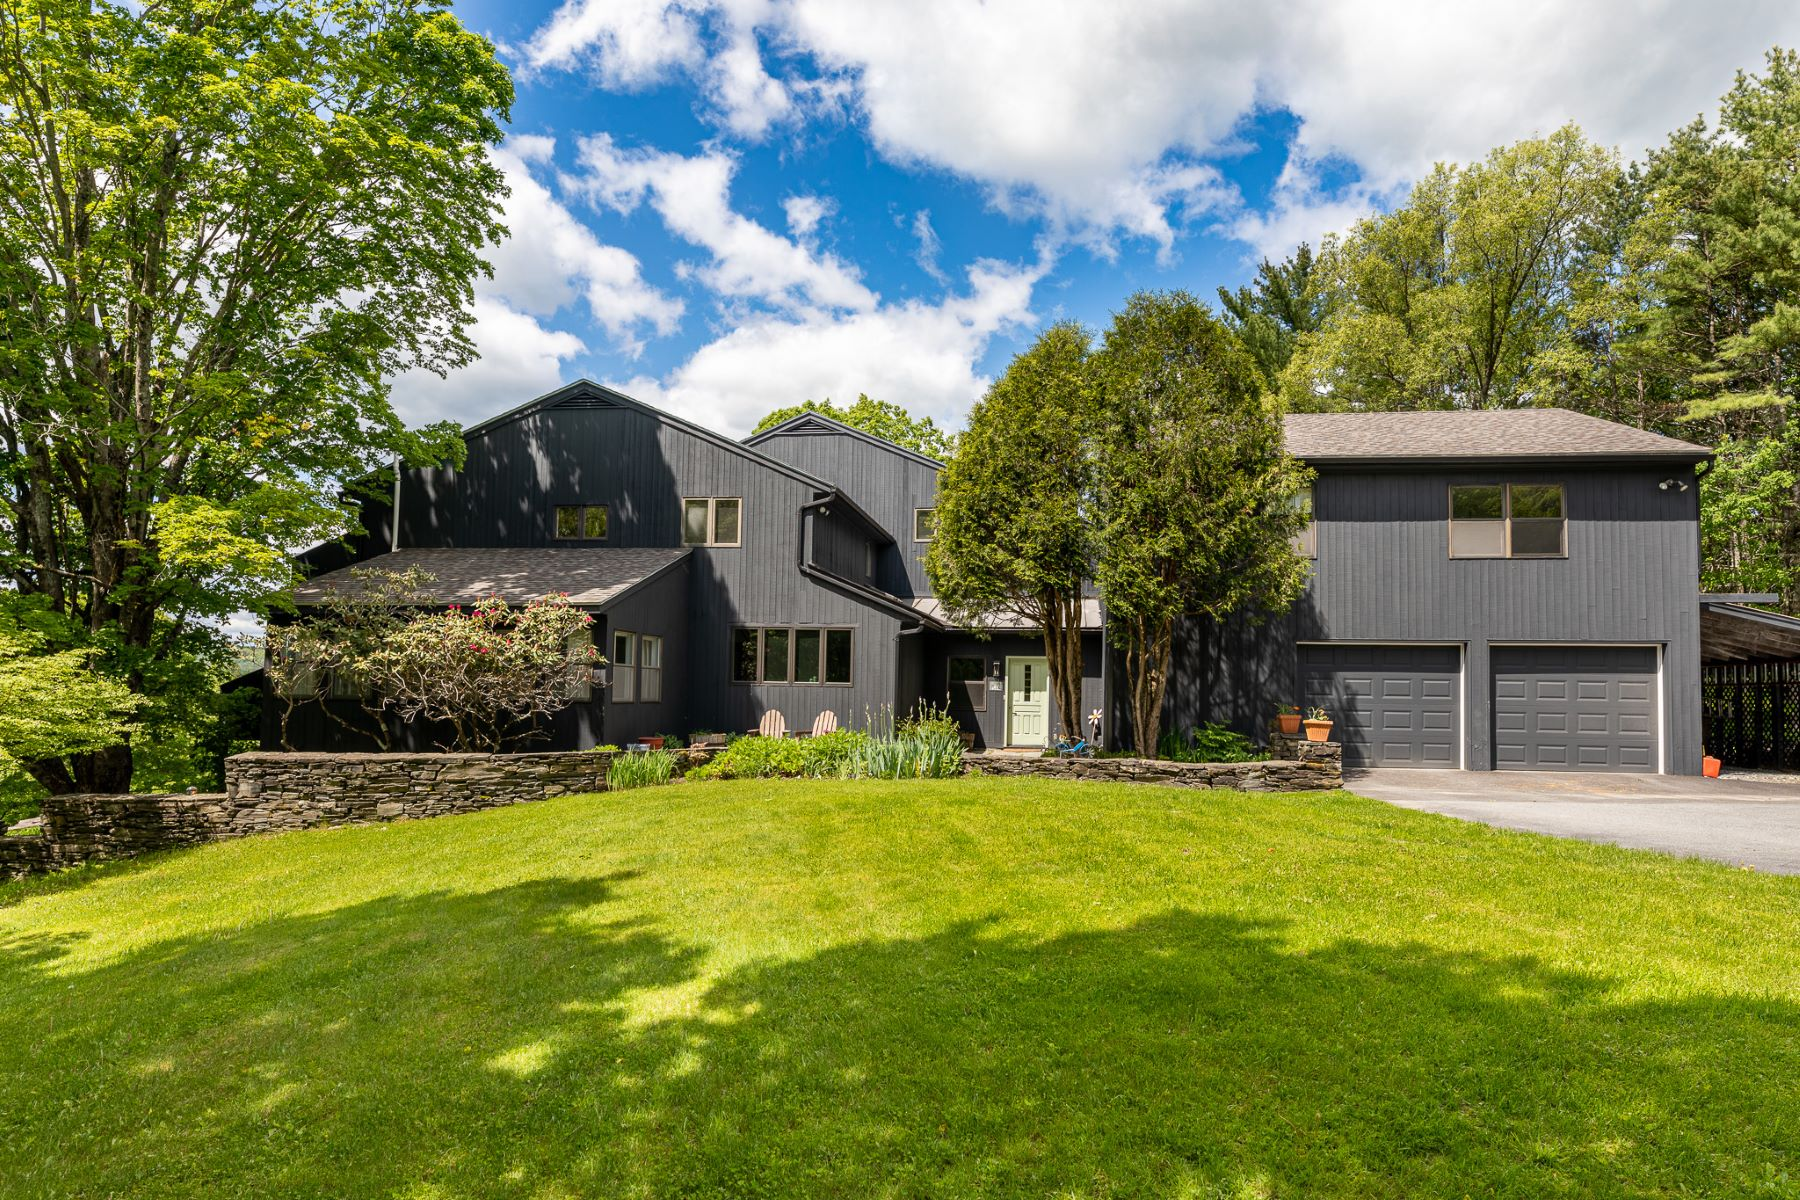 Single Family Homes for Sale at 63 Douglas Hill Road, Norwich 63 Douglas Hill Rd Norwich, Vermont 05055 United States